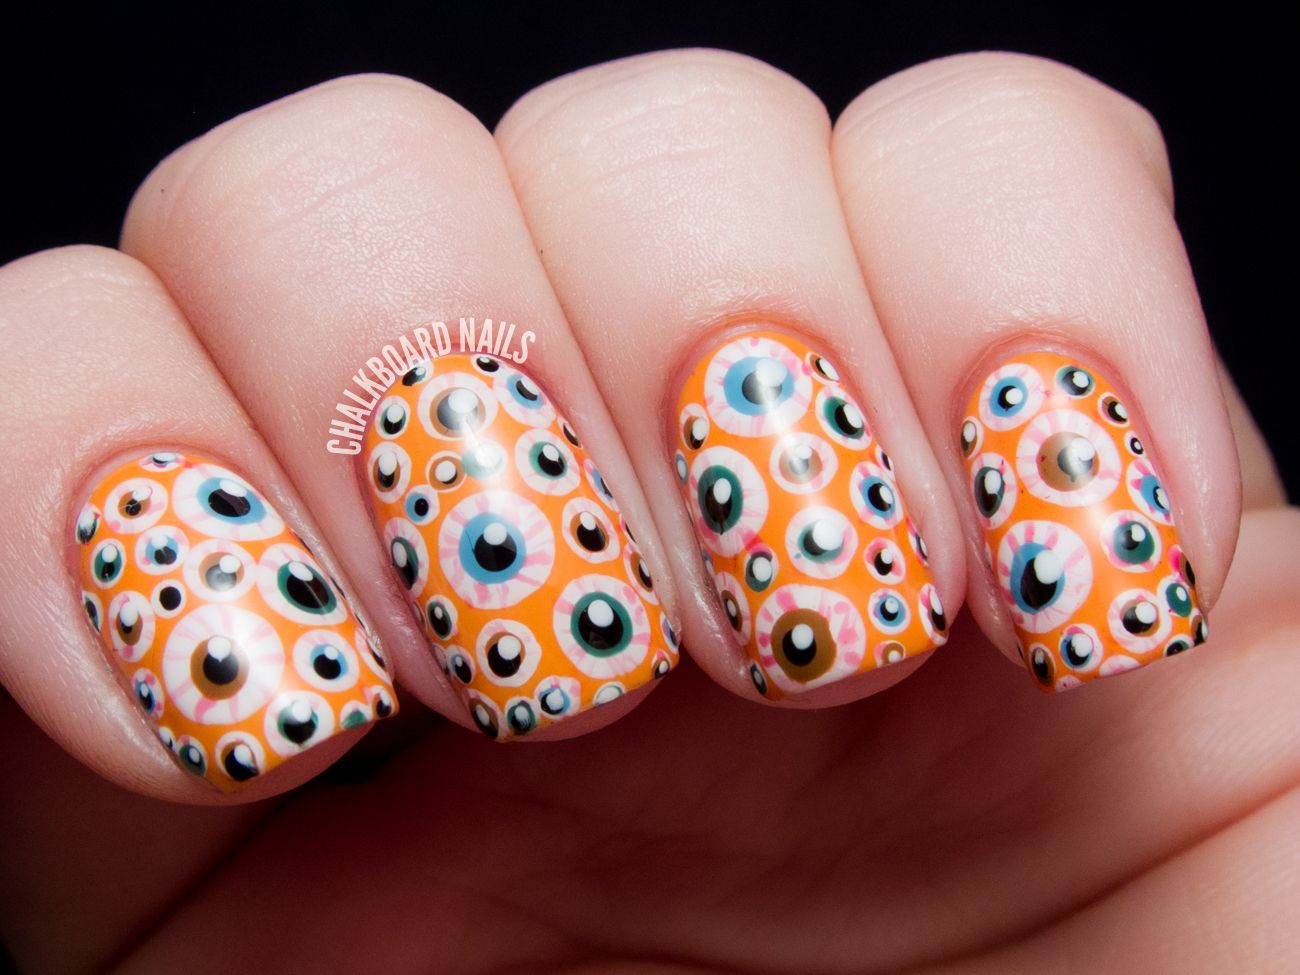 Eyeball nails! Awesome execution, love the background color ...